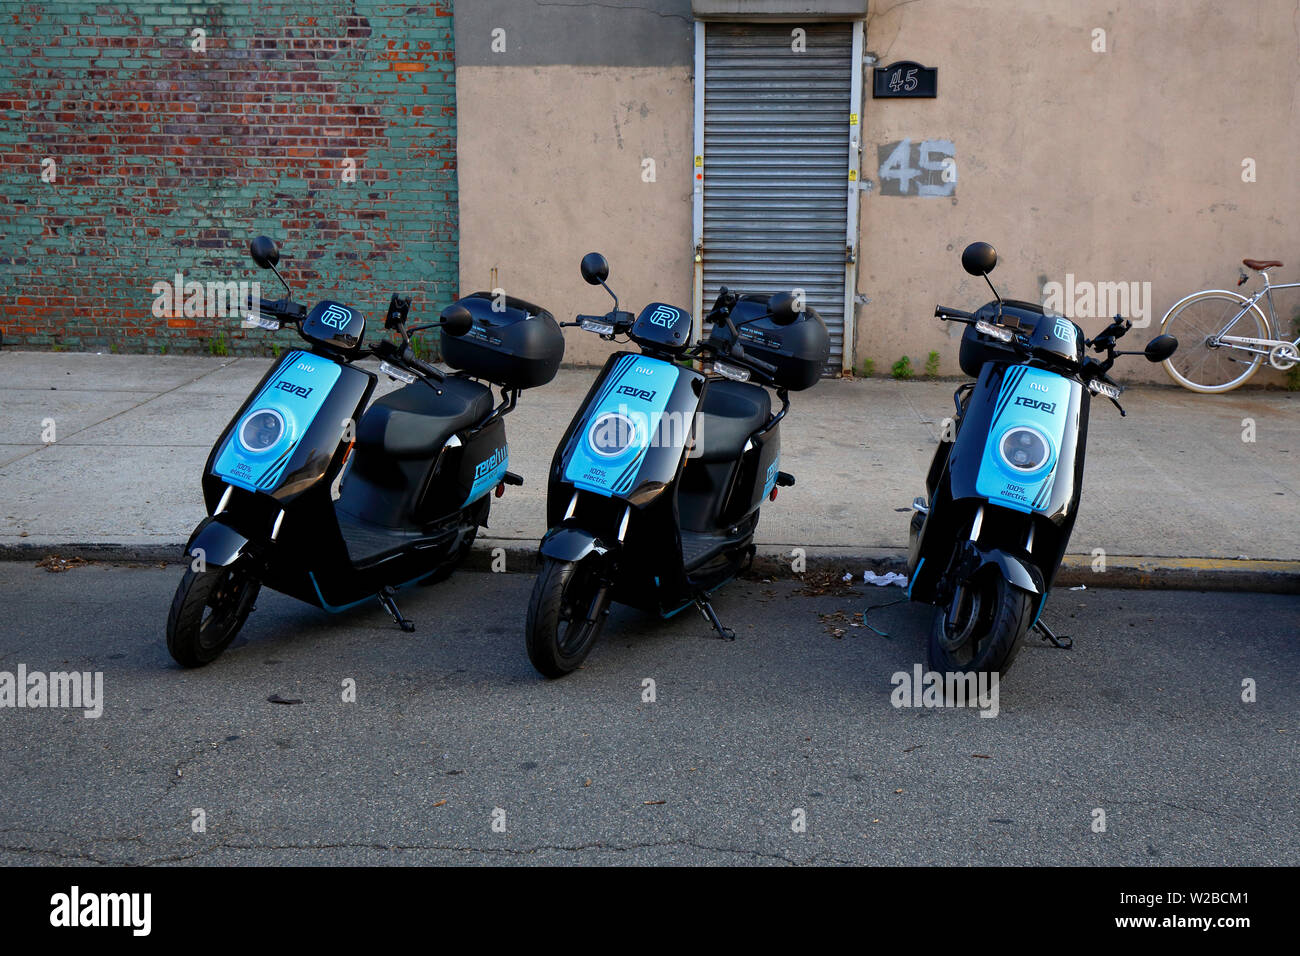 Revel dockless rental electric mopeds parked on a street Stock Photo